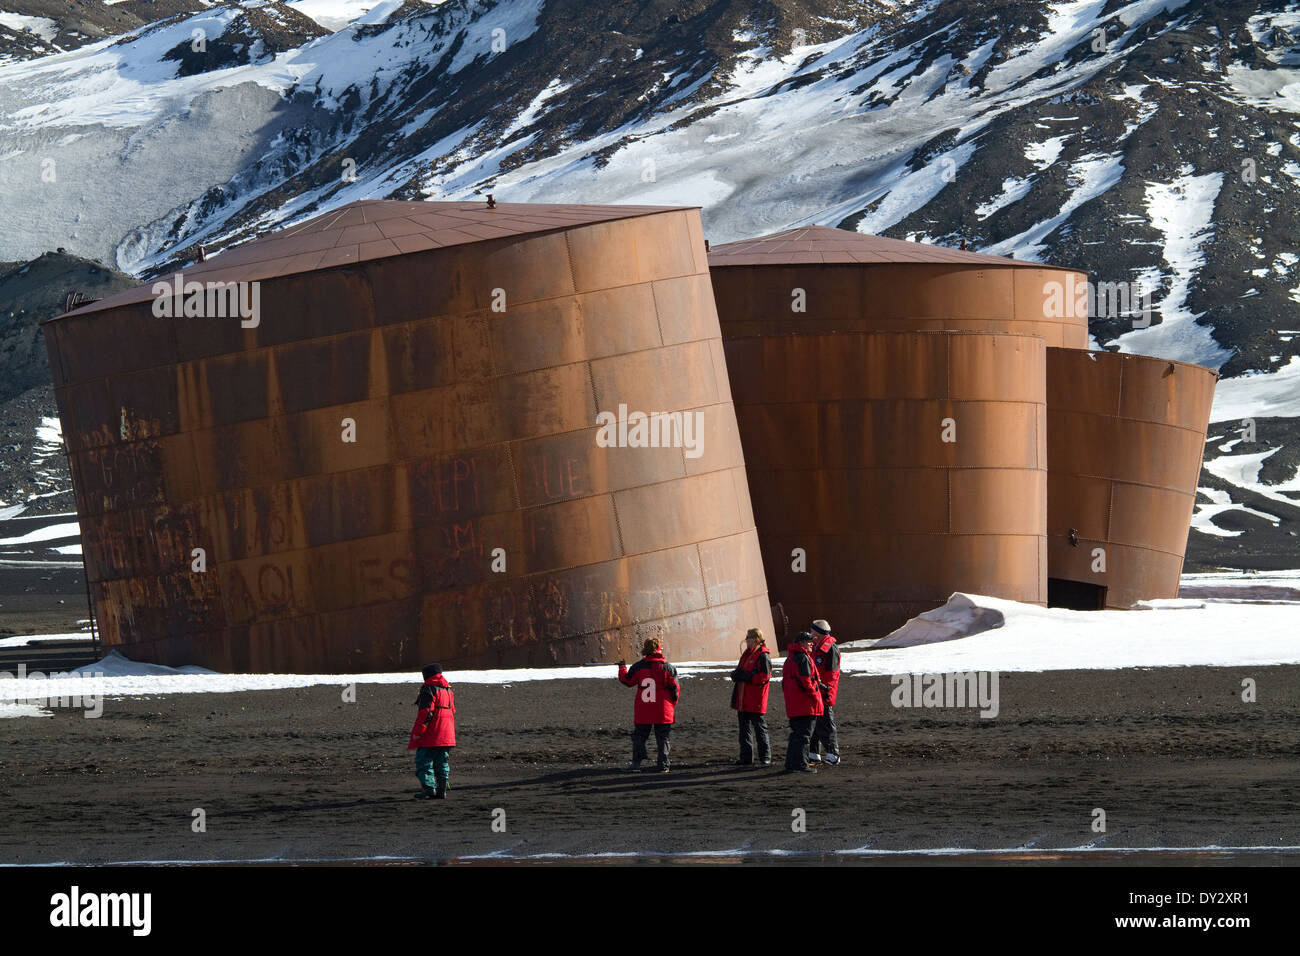 Antarctica tourism at Whaler's Bay, Deception Island. Tourists from cruise ship explore near derelict whale - Stock Image